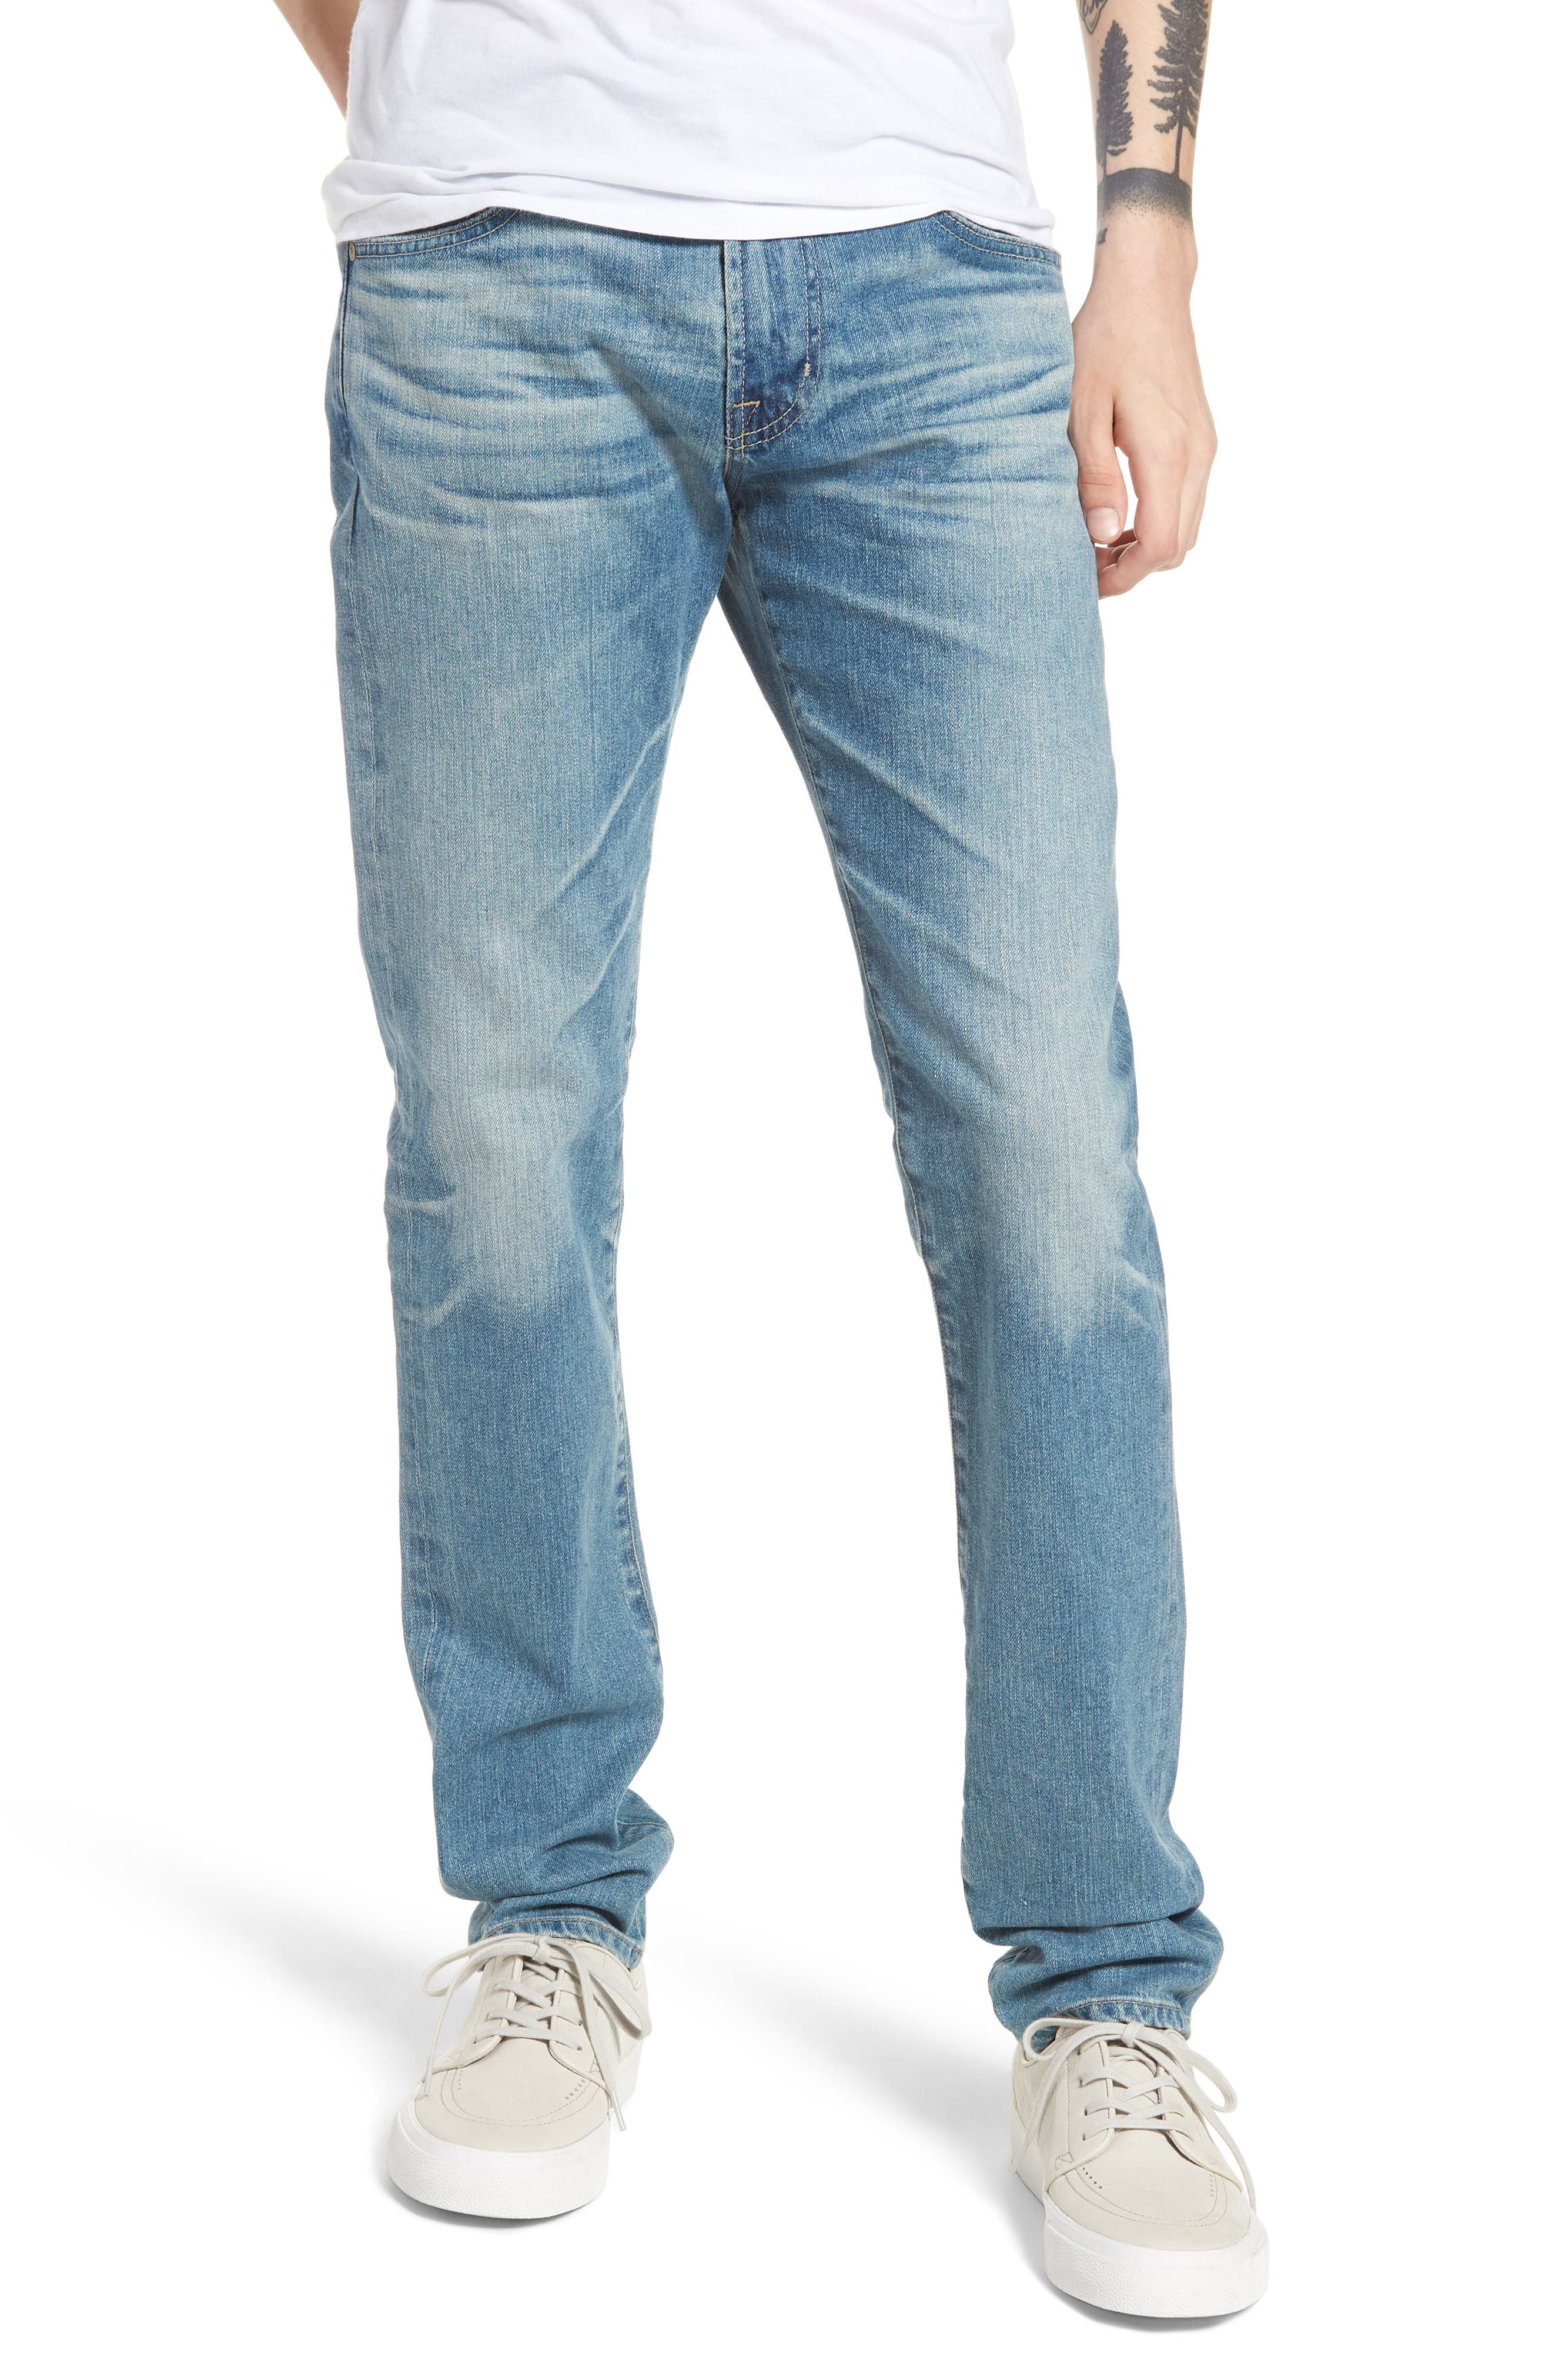 Dylan Skinny Fit Jeans,                             Main thumbnail 1, color,                             18 YEARS OCEANO